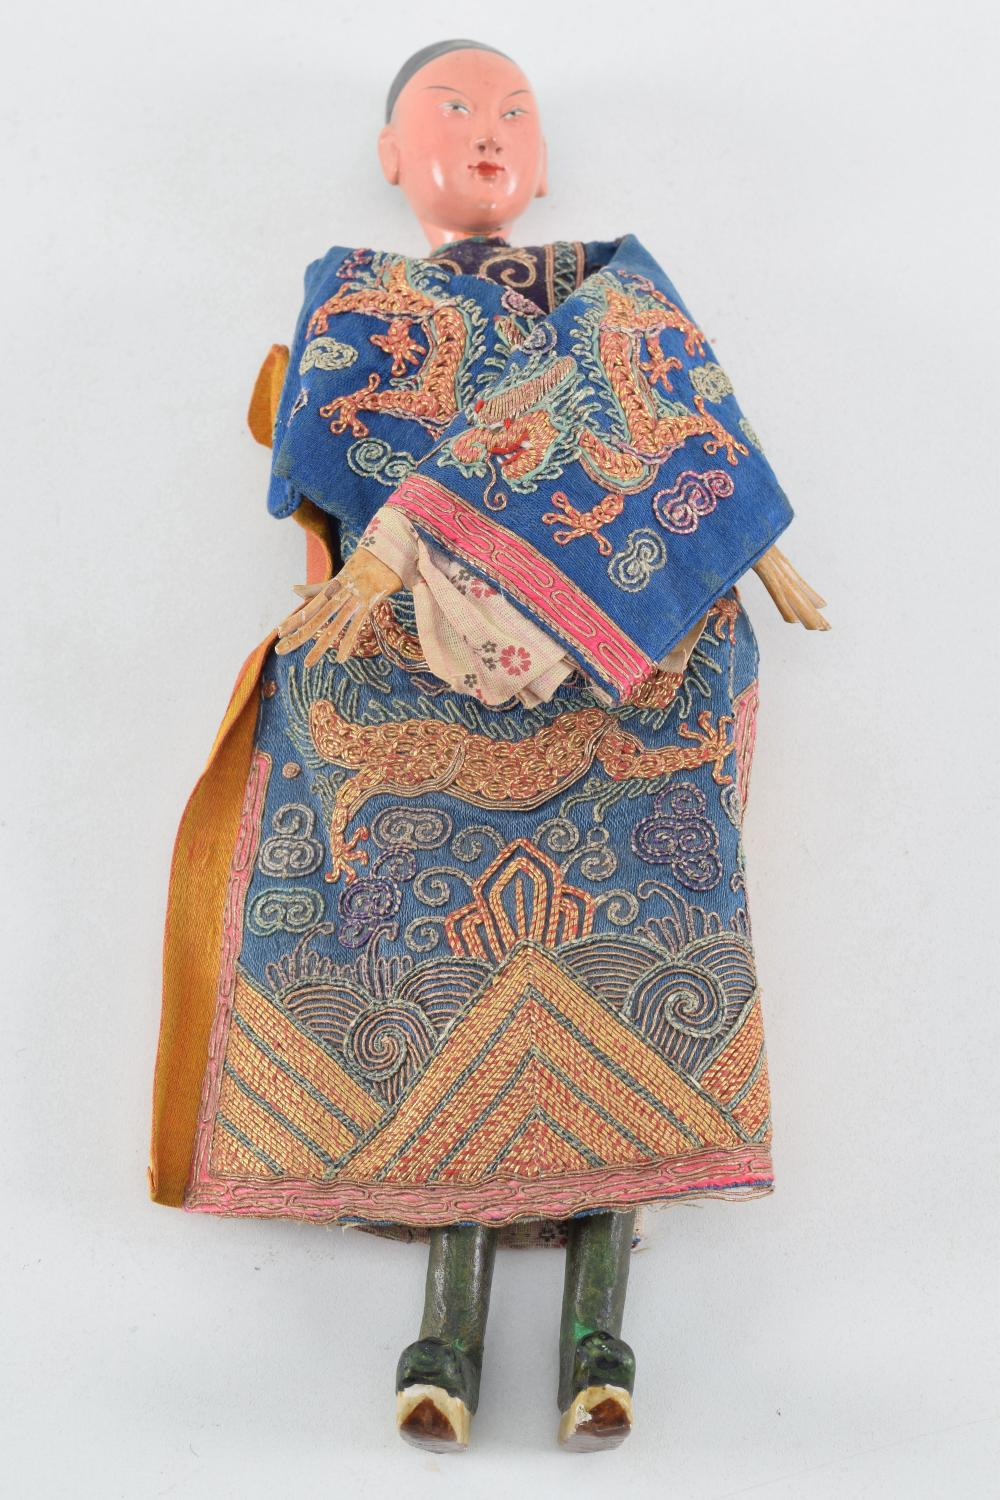 Chinese doll. Early 20th century. Costume of